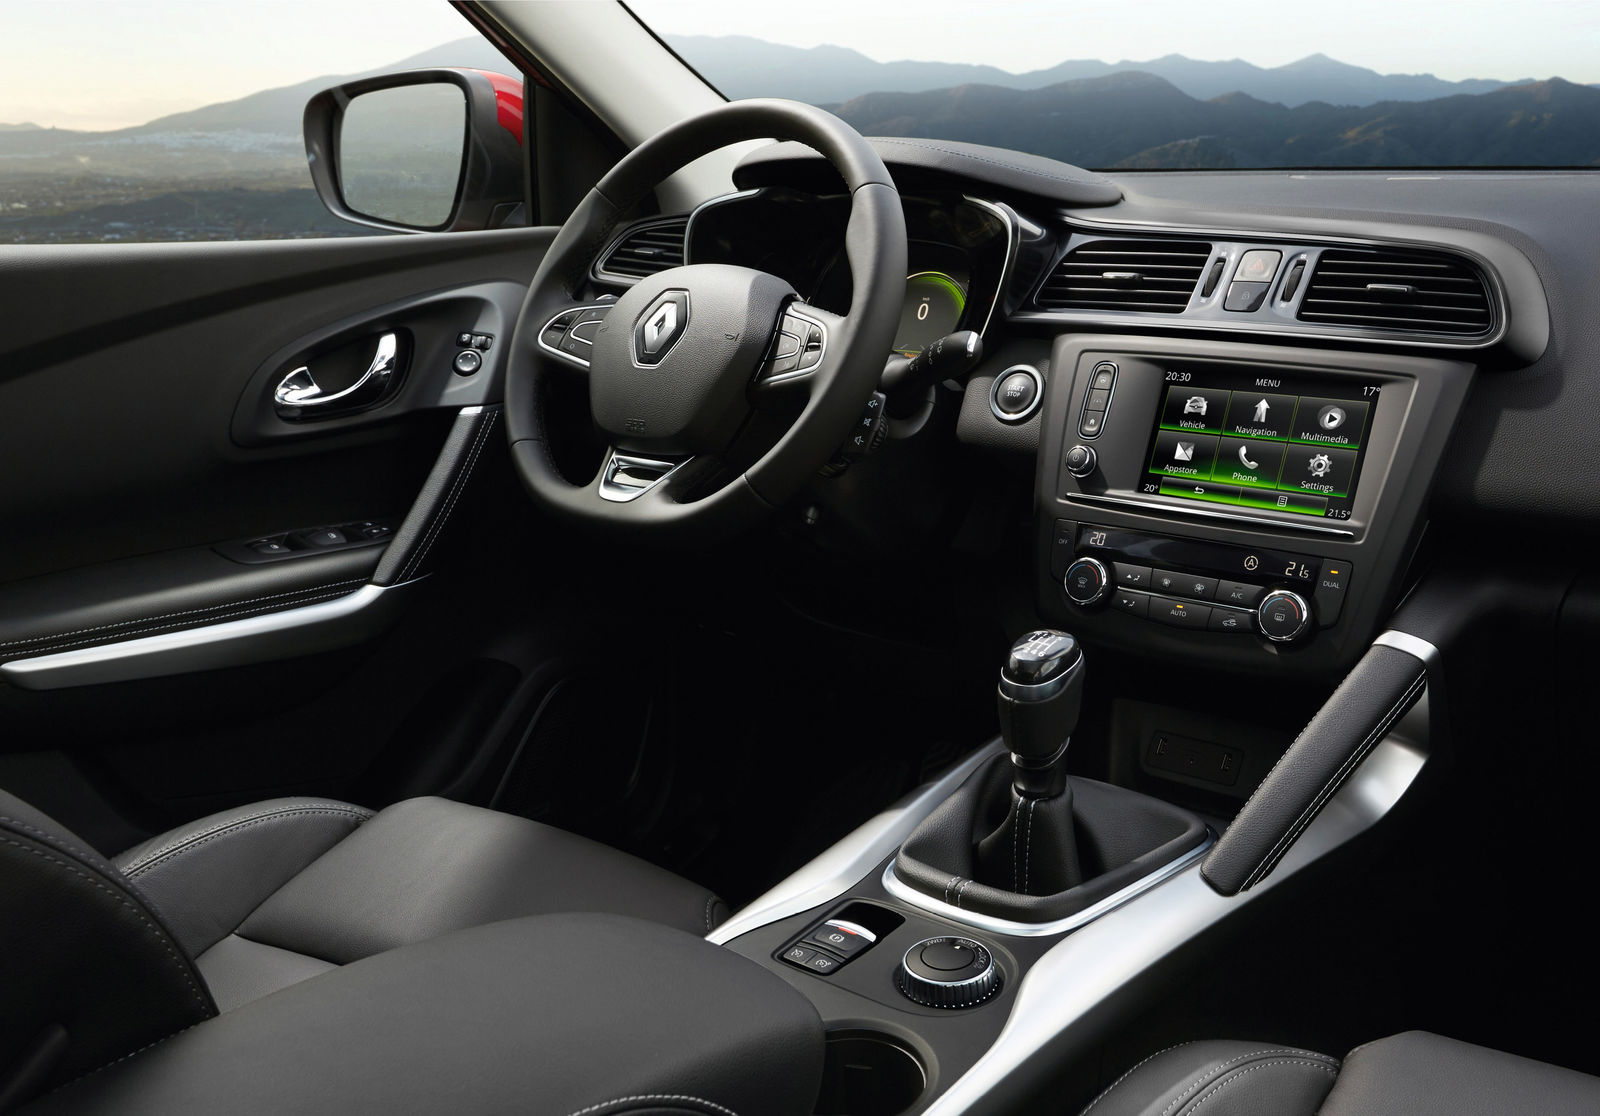 renault kadjar sizes and dimensions guide carwow